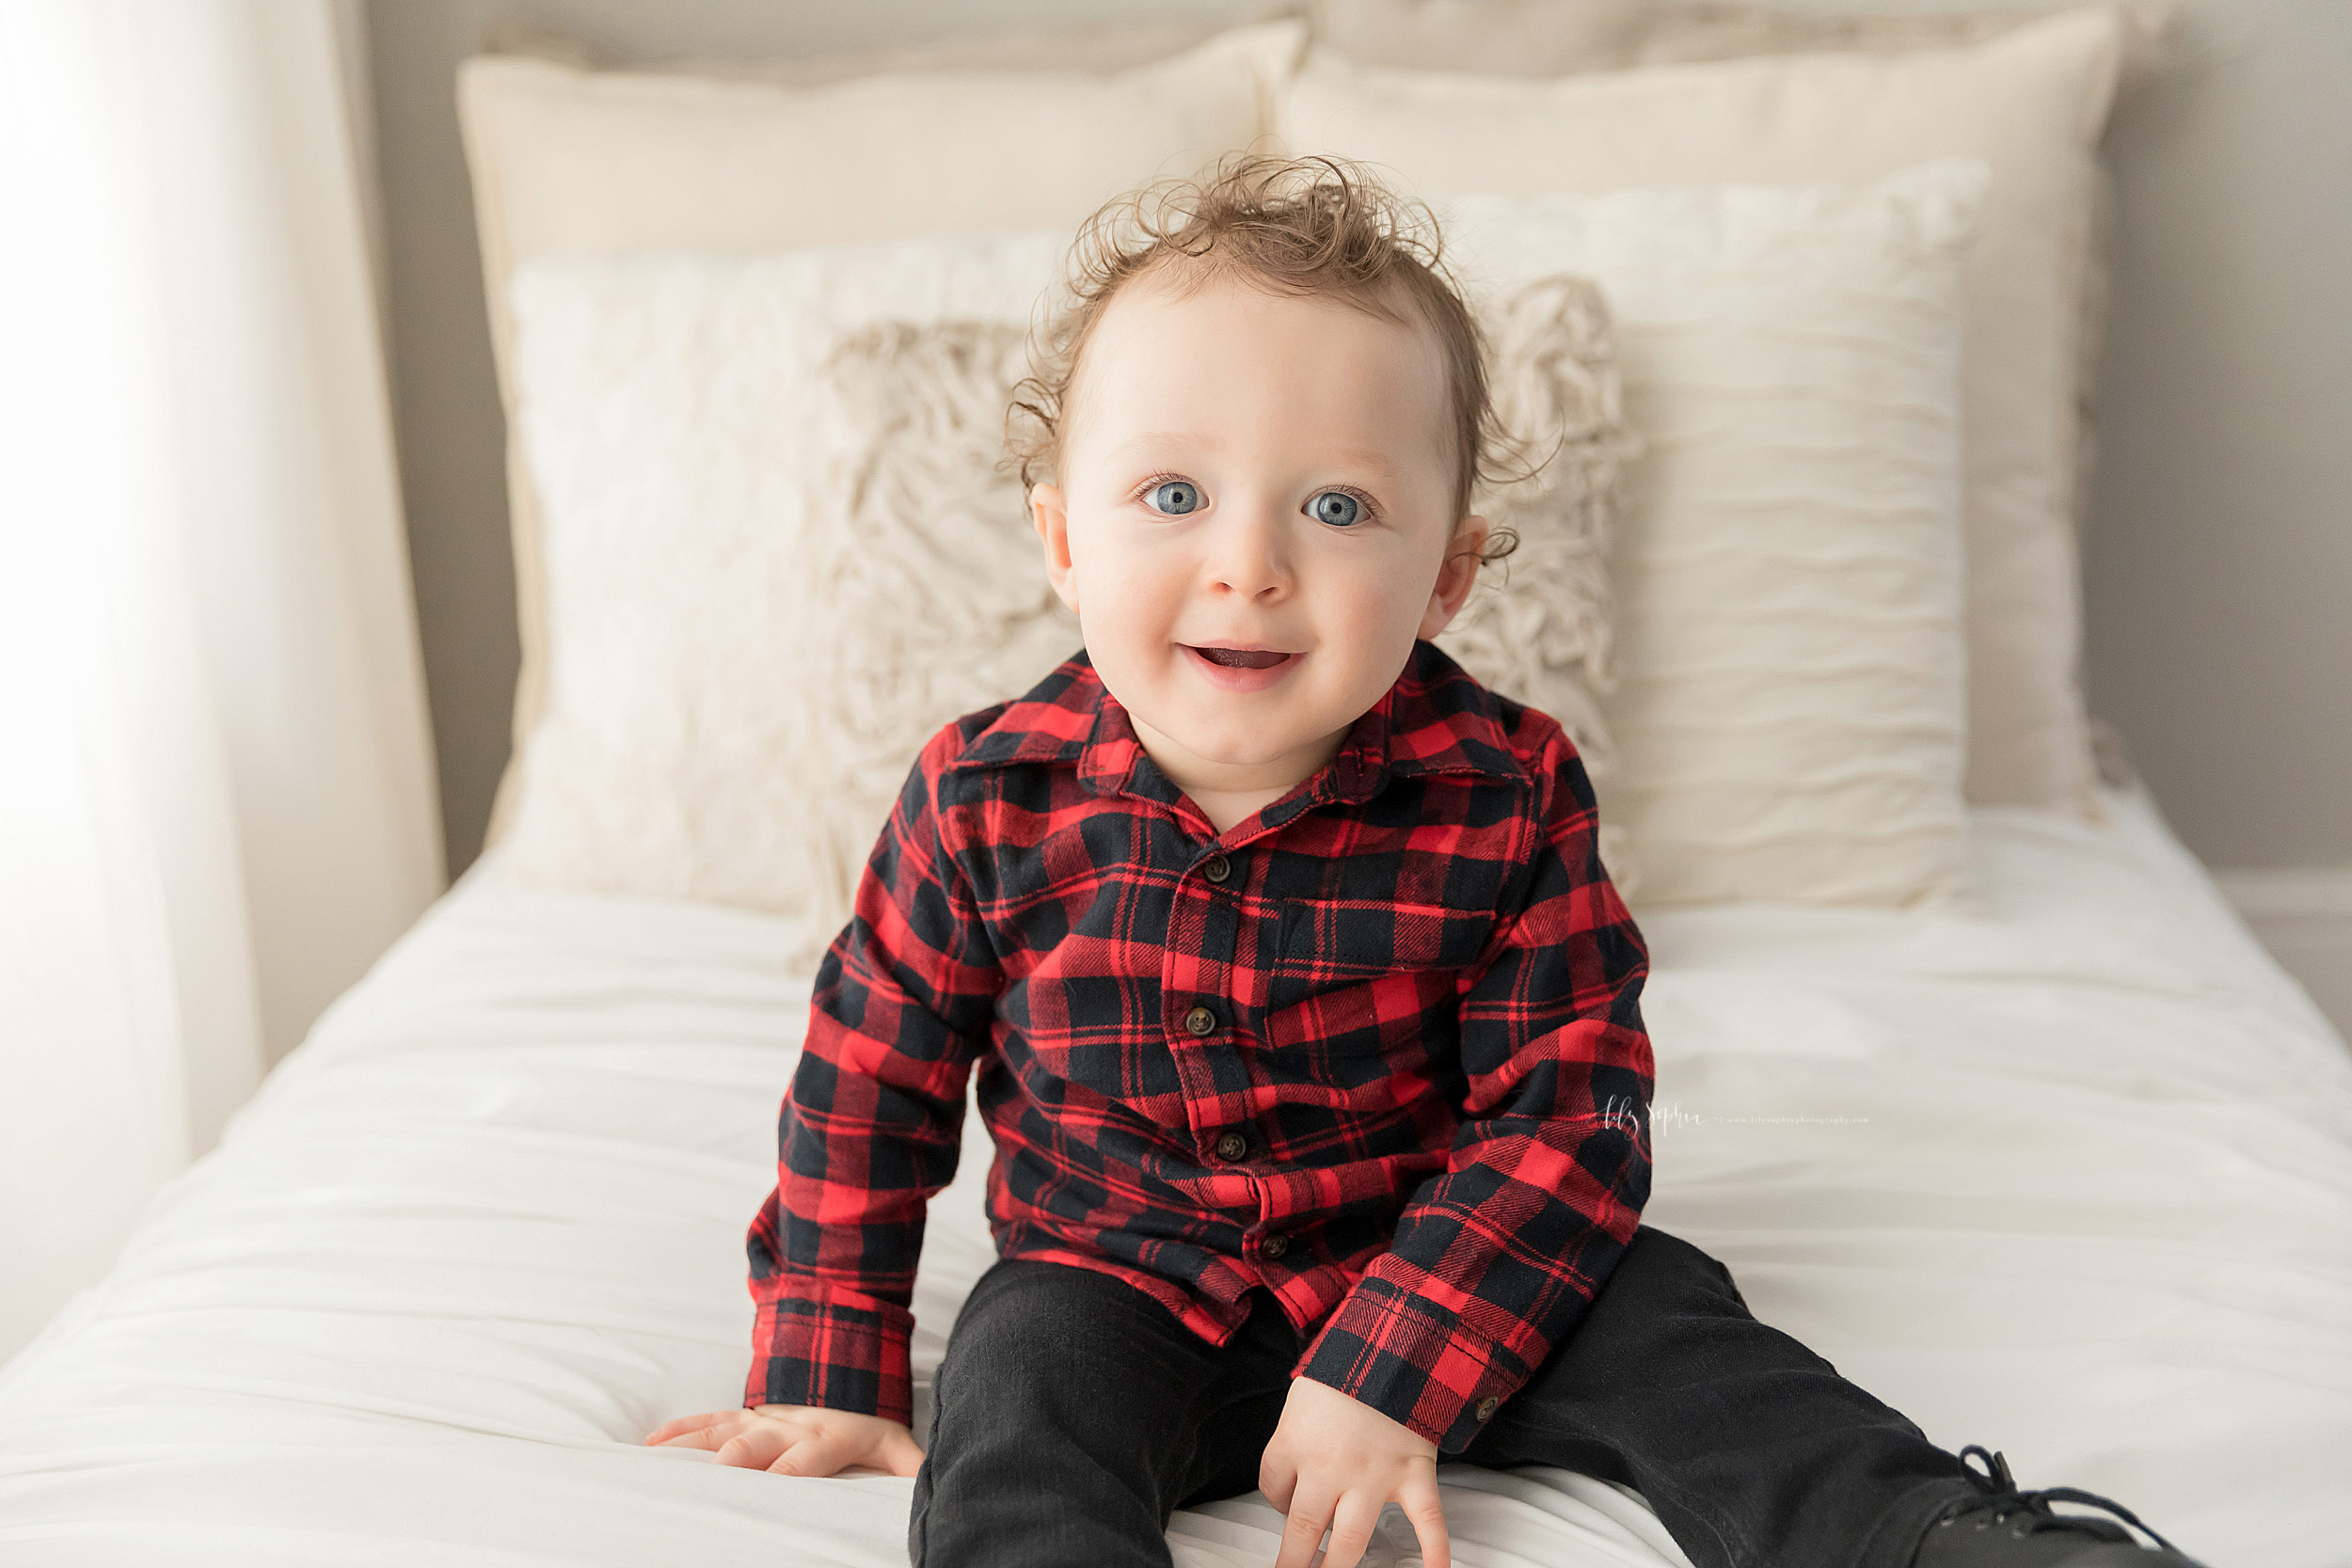 Milestone photo of a boy on his first birthday in an Atlanta natural light studio.